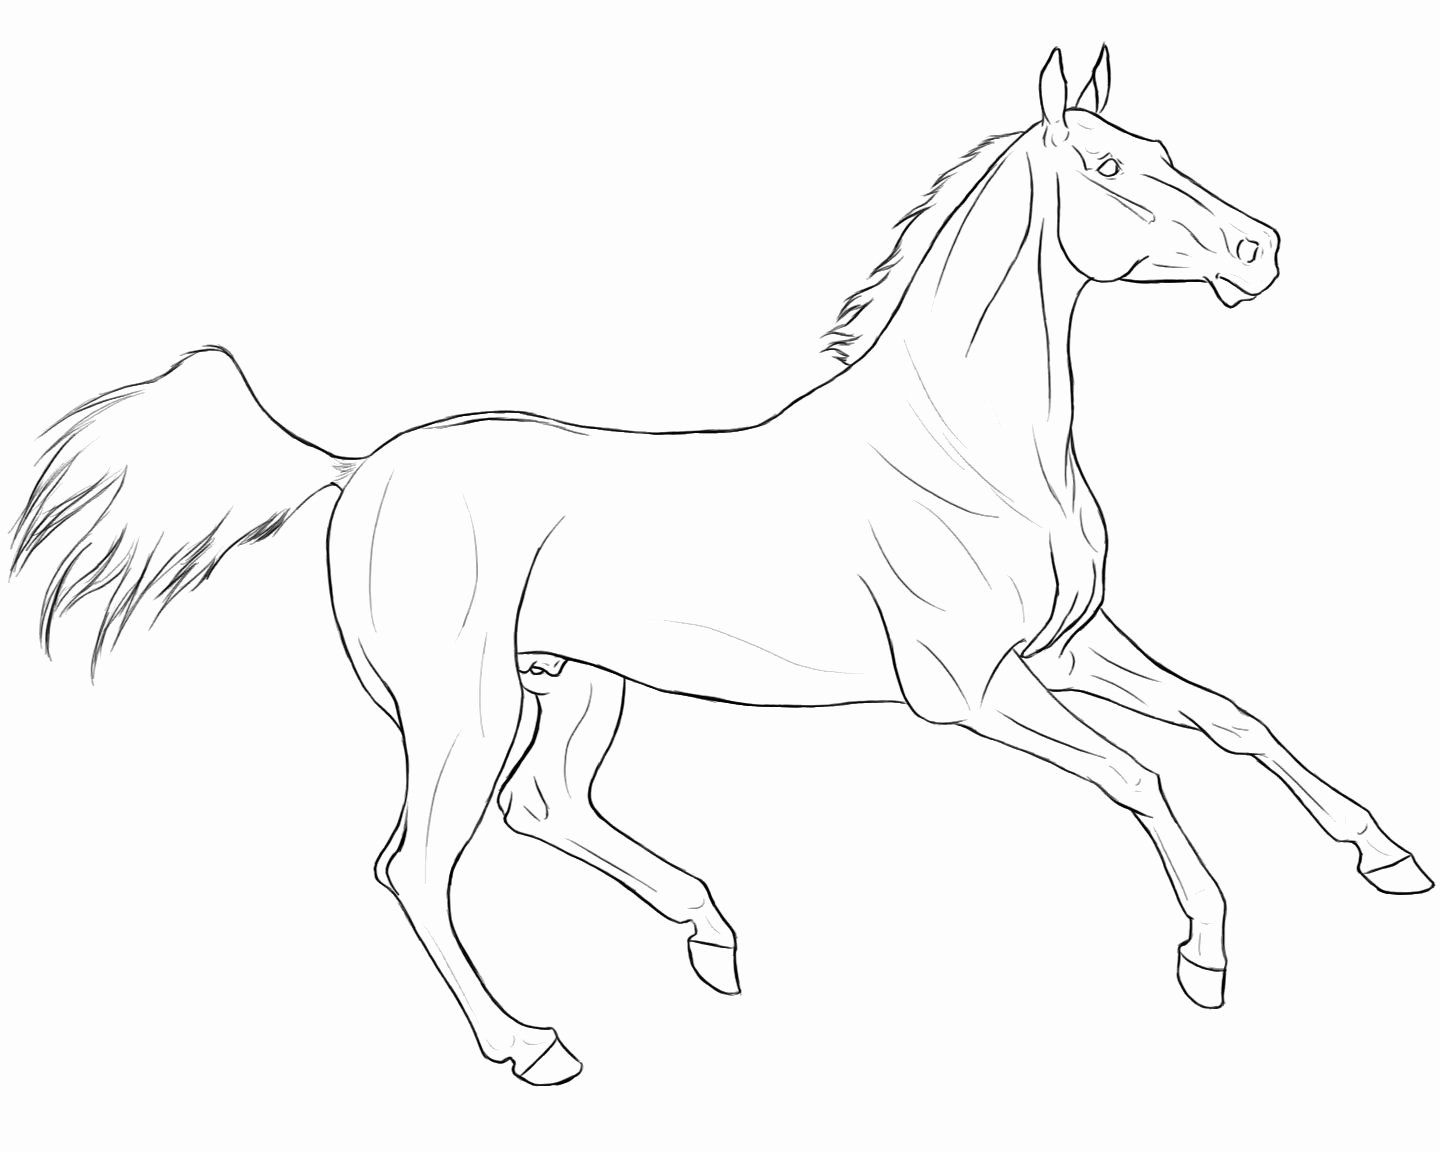 Horse Coloring Sheets Printable Awesome Lovely Draft Horse Coloring Pages Nocn Horse Coloring Pages Horse Coloring Horse Drawings